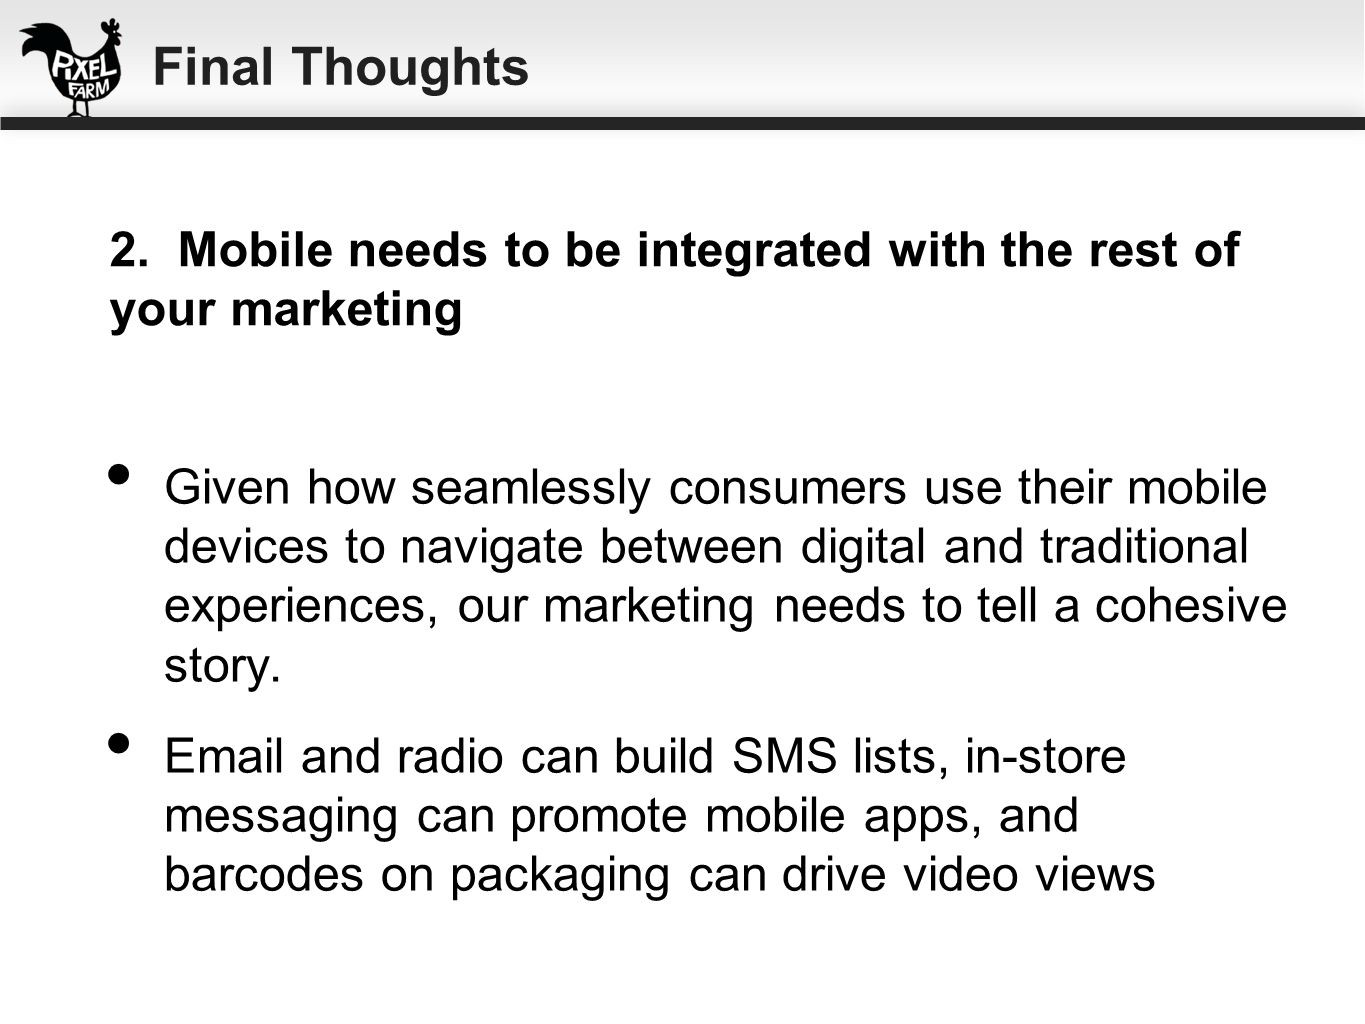 Final Thoughts 2. Mobile needs to be integrated with the rest of your marketing.